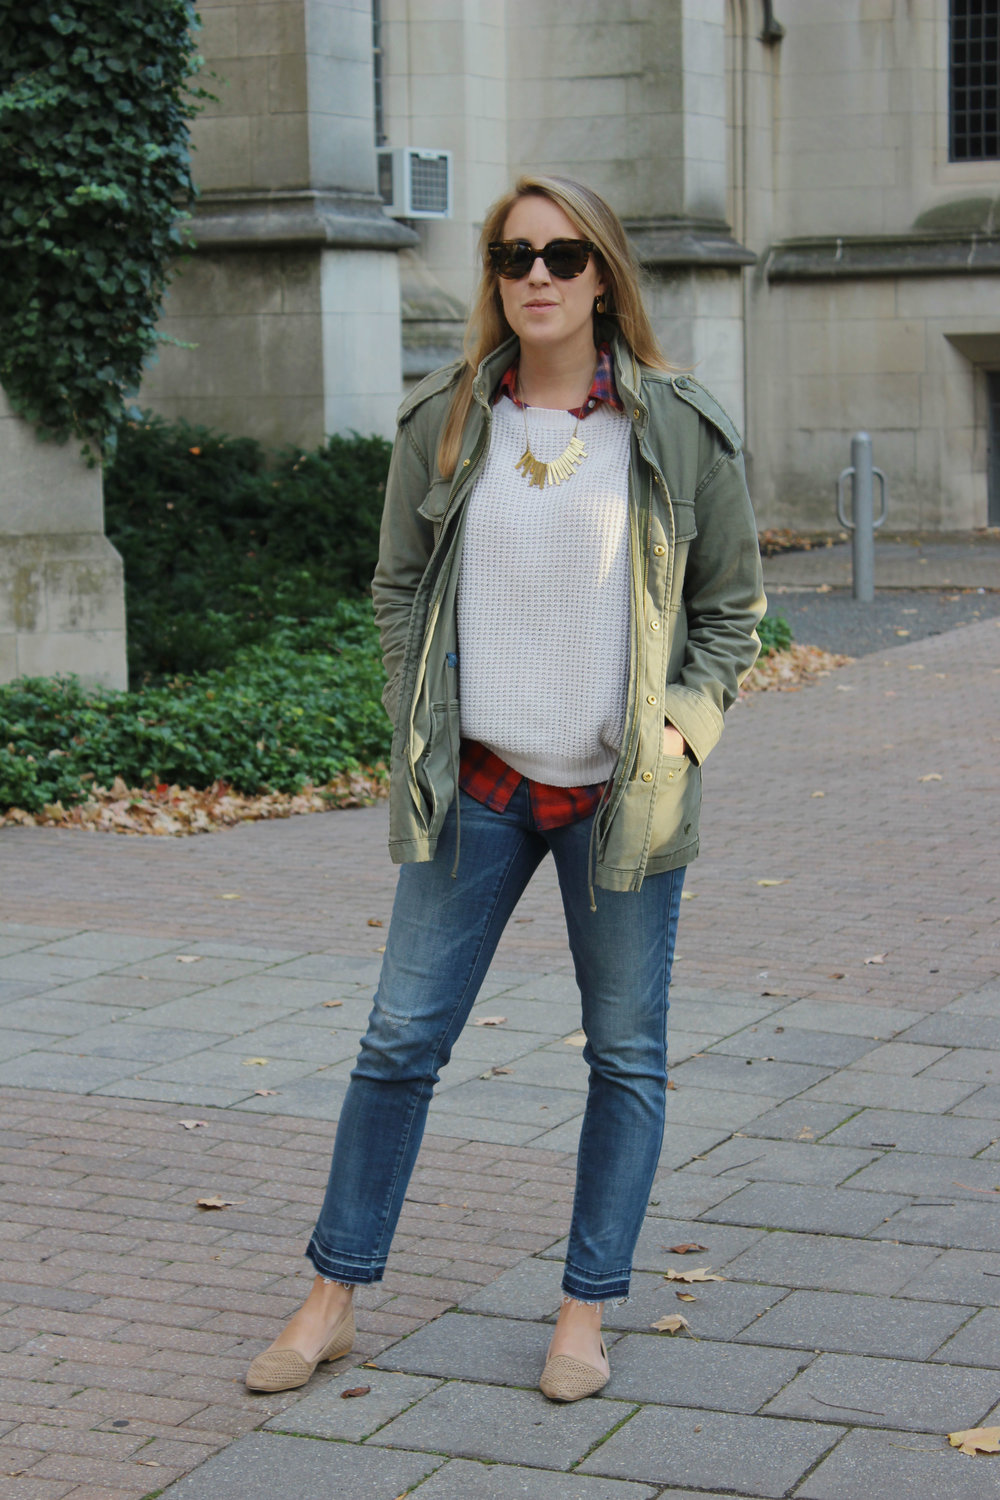 Four Favorite and Effortless Fall Looks That Always Win - wear she blossoms